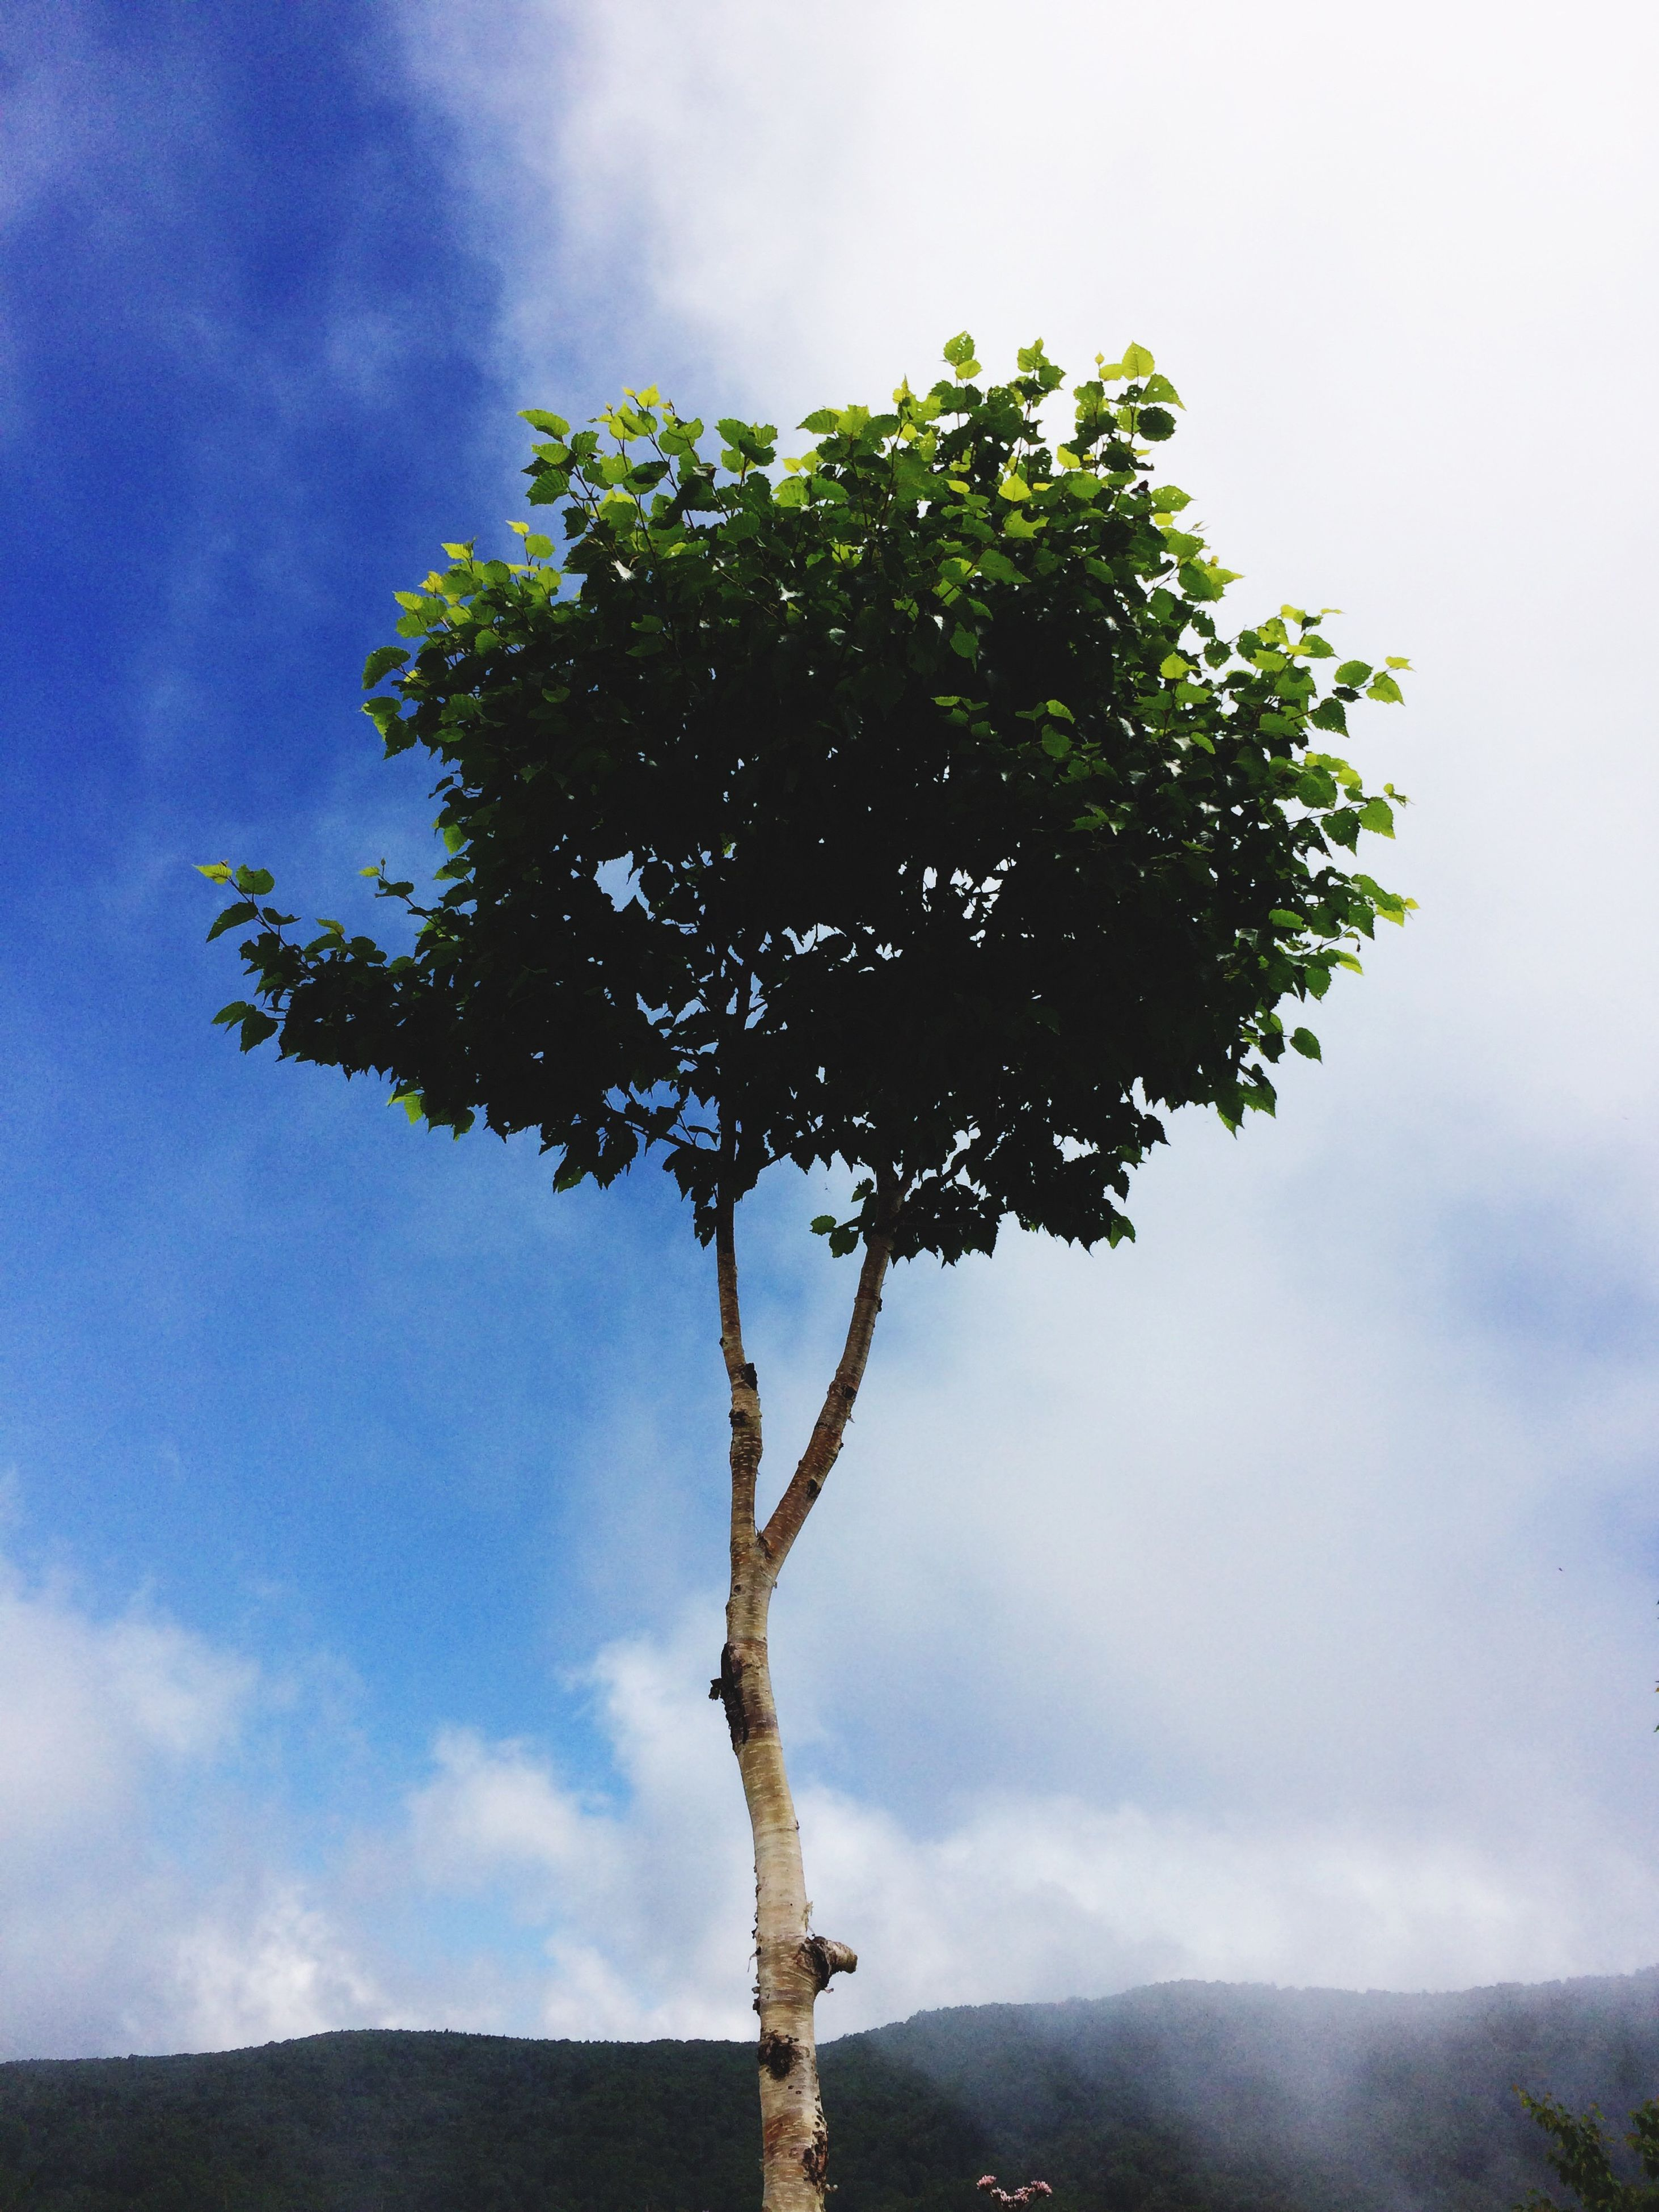 tree, sky, nature, growth, no people, cloud - sky, beauty in nature, low angle view, tranquility, outdoors, day, single tree, freshness